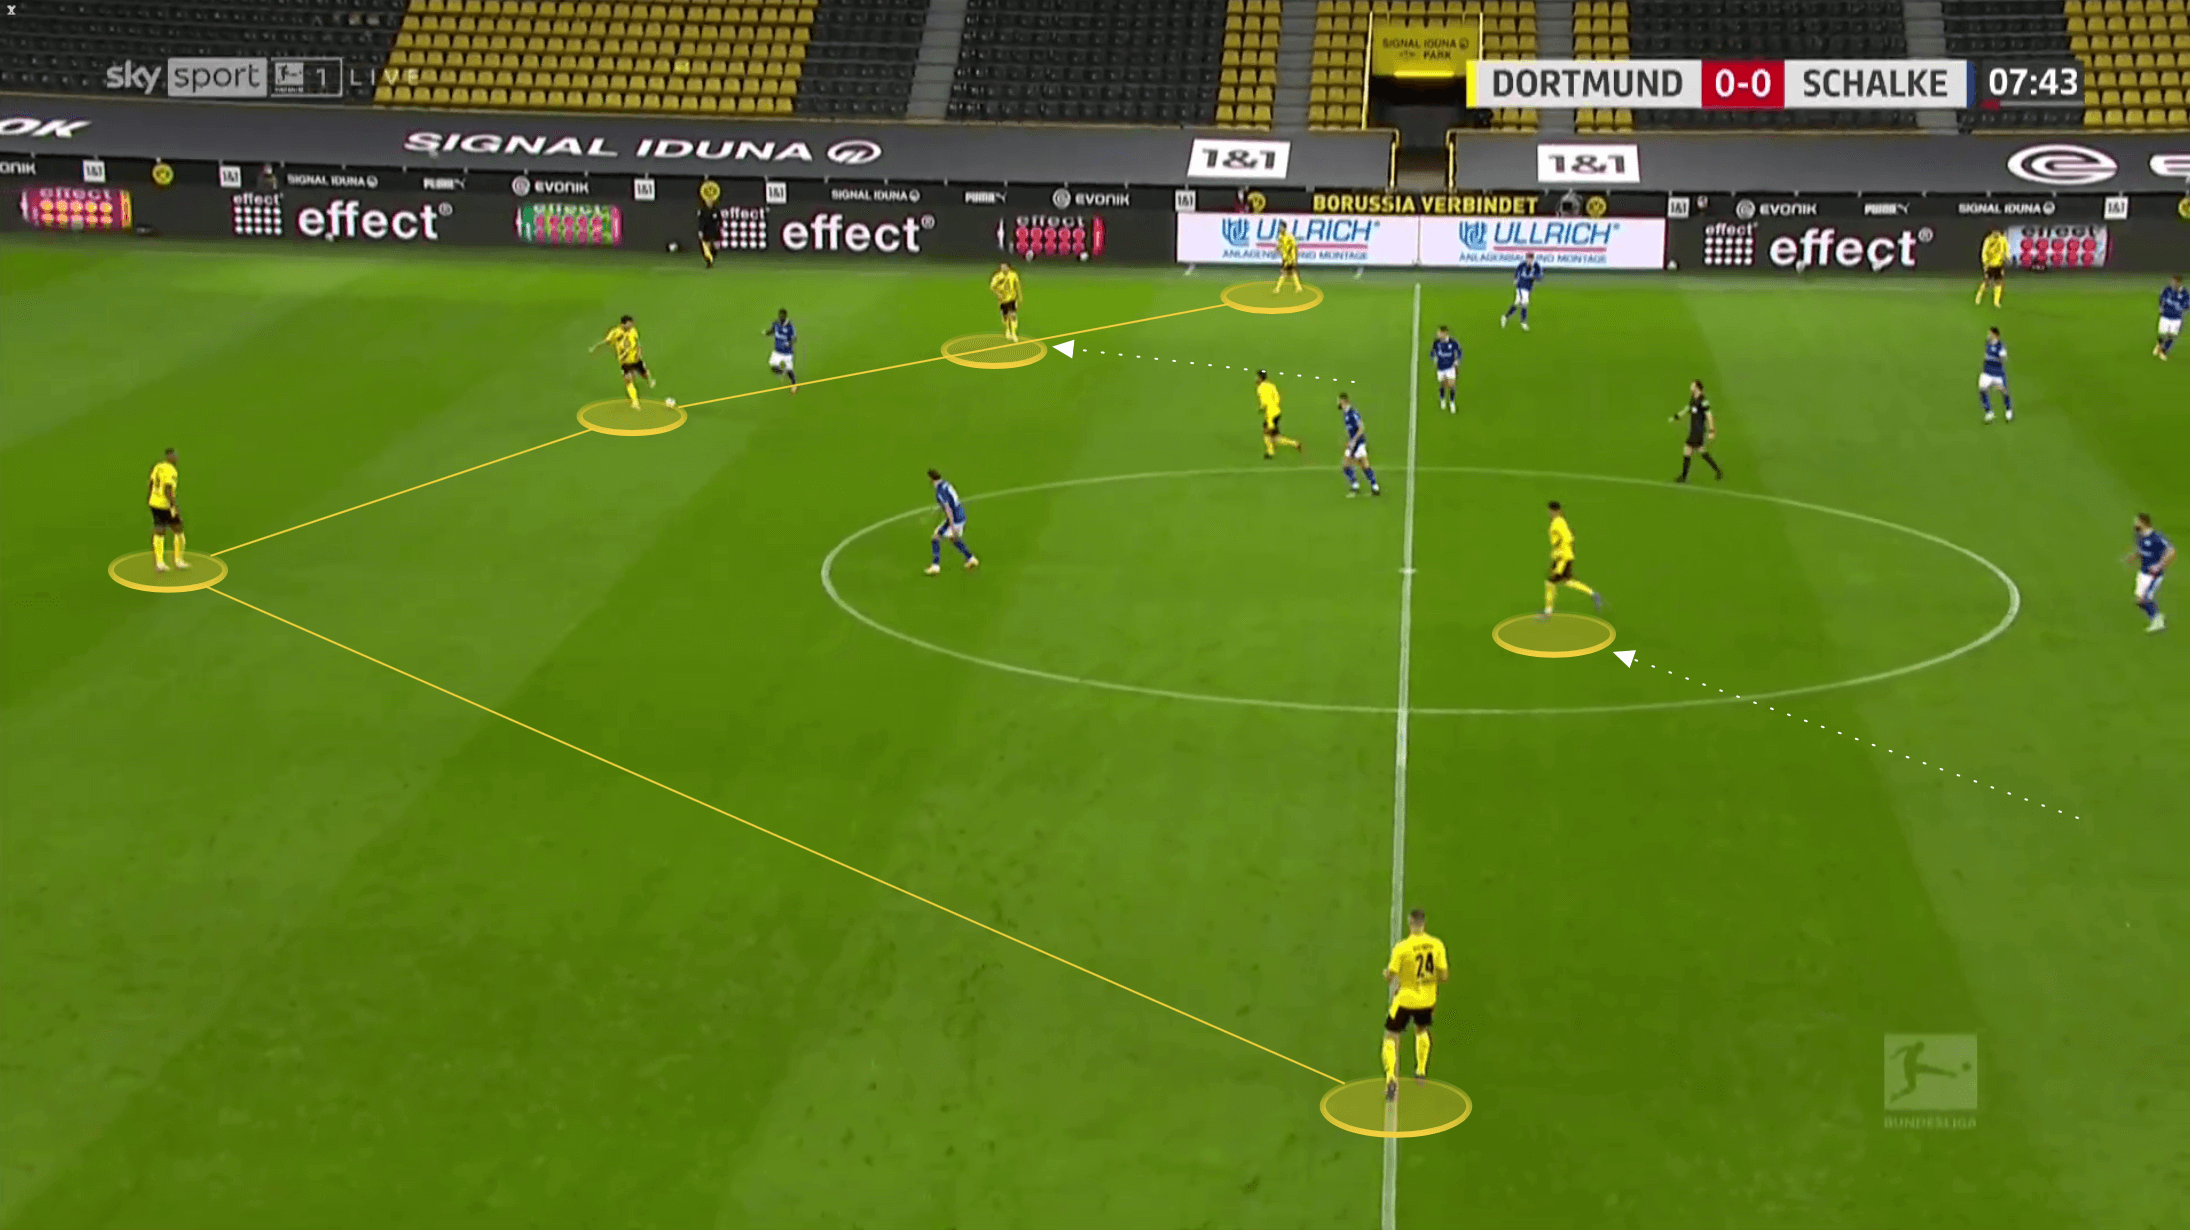 Bundesliga 2020/21: Borussia Dortmund vs Schalke - tactical analysis tactics